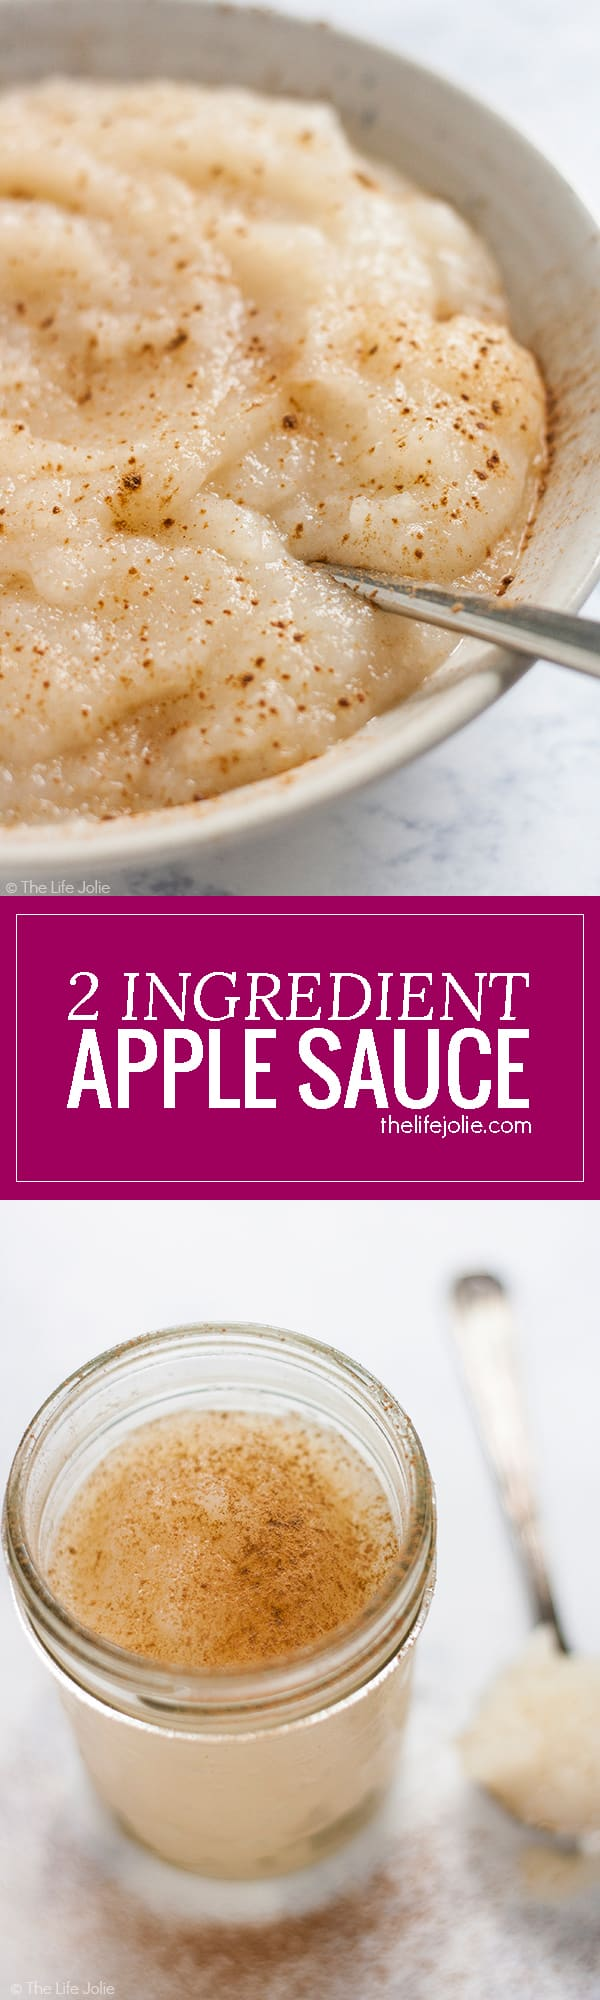 This homemade 2 Ingredient Applesauce is one of quickest and most easy recipes ever! The is no sugar added which makes it super healthy and it has plenty of uses! My whole family loves it!